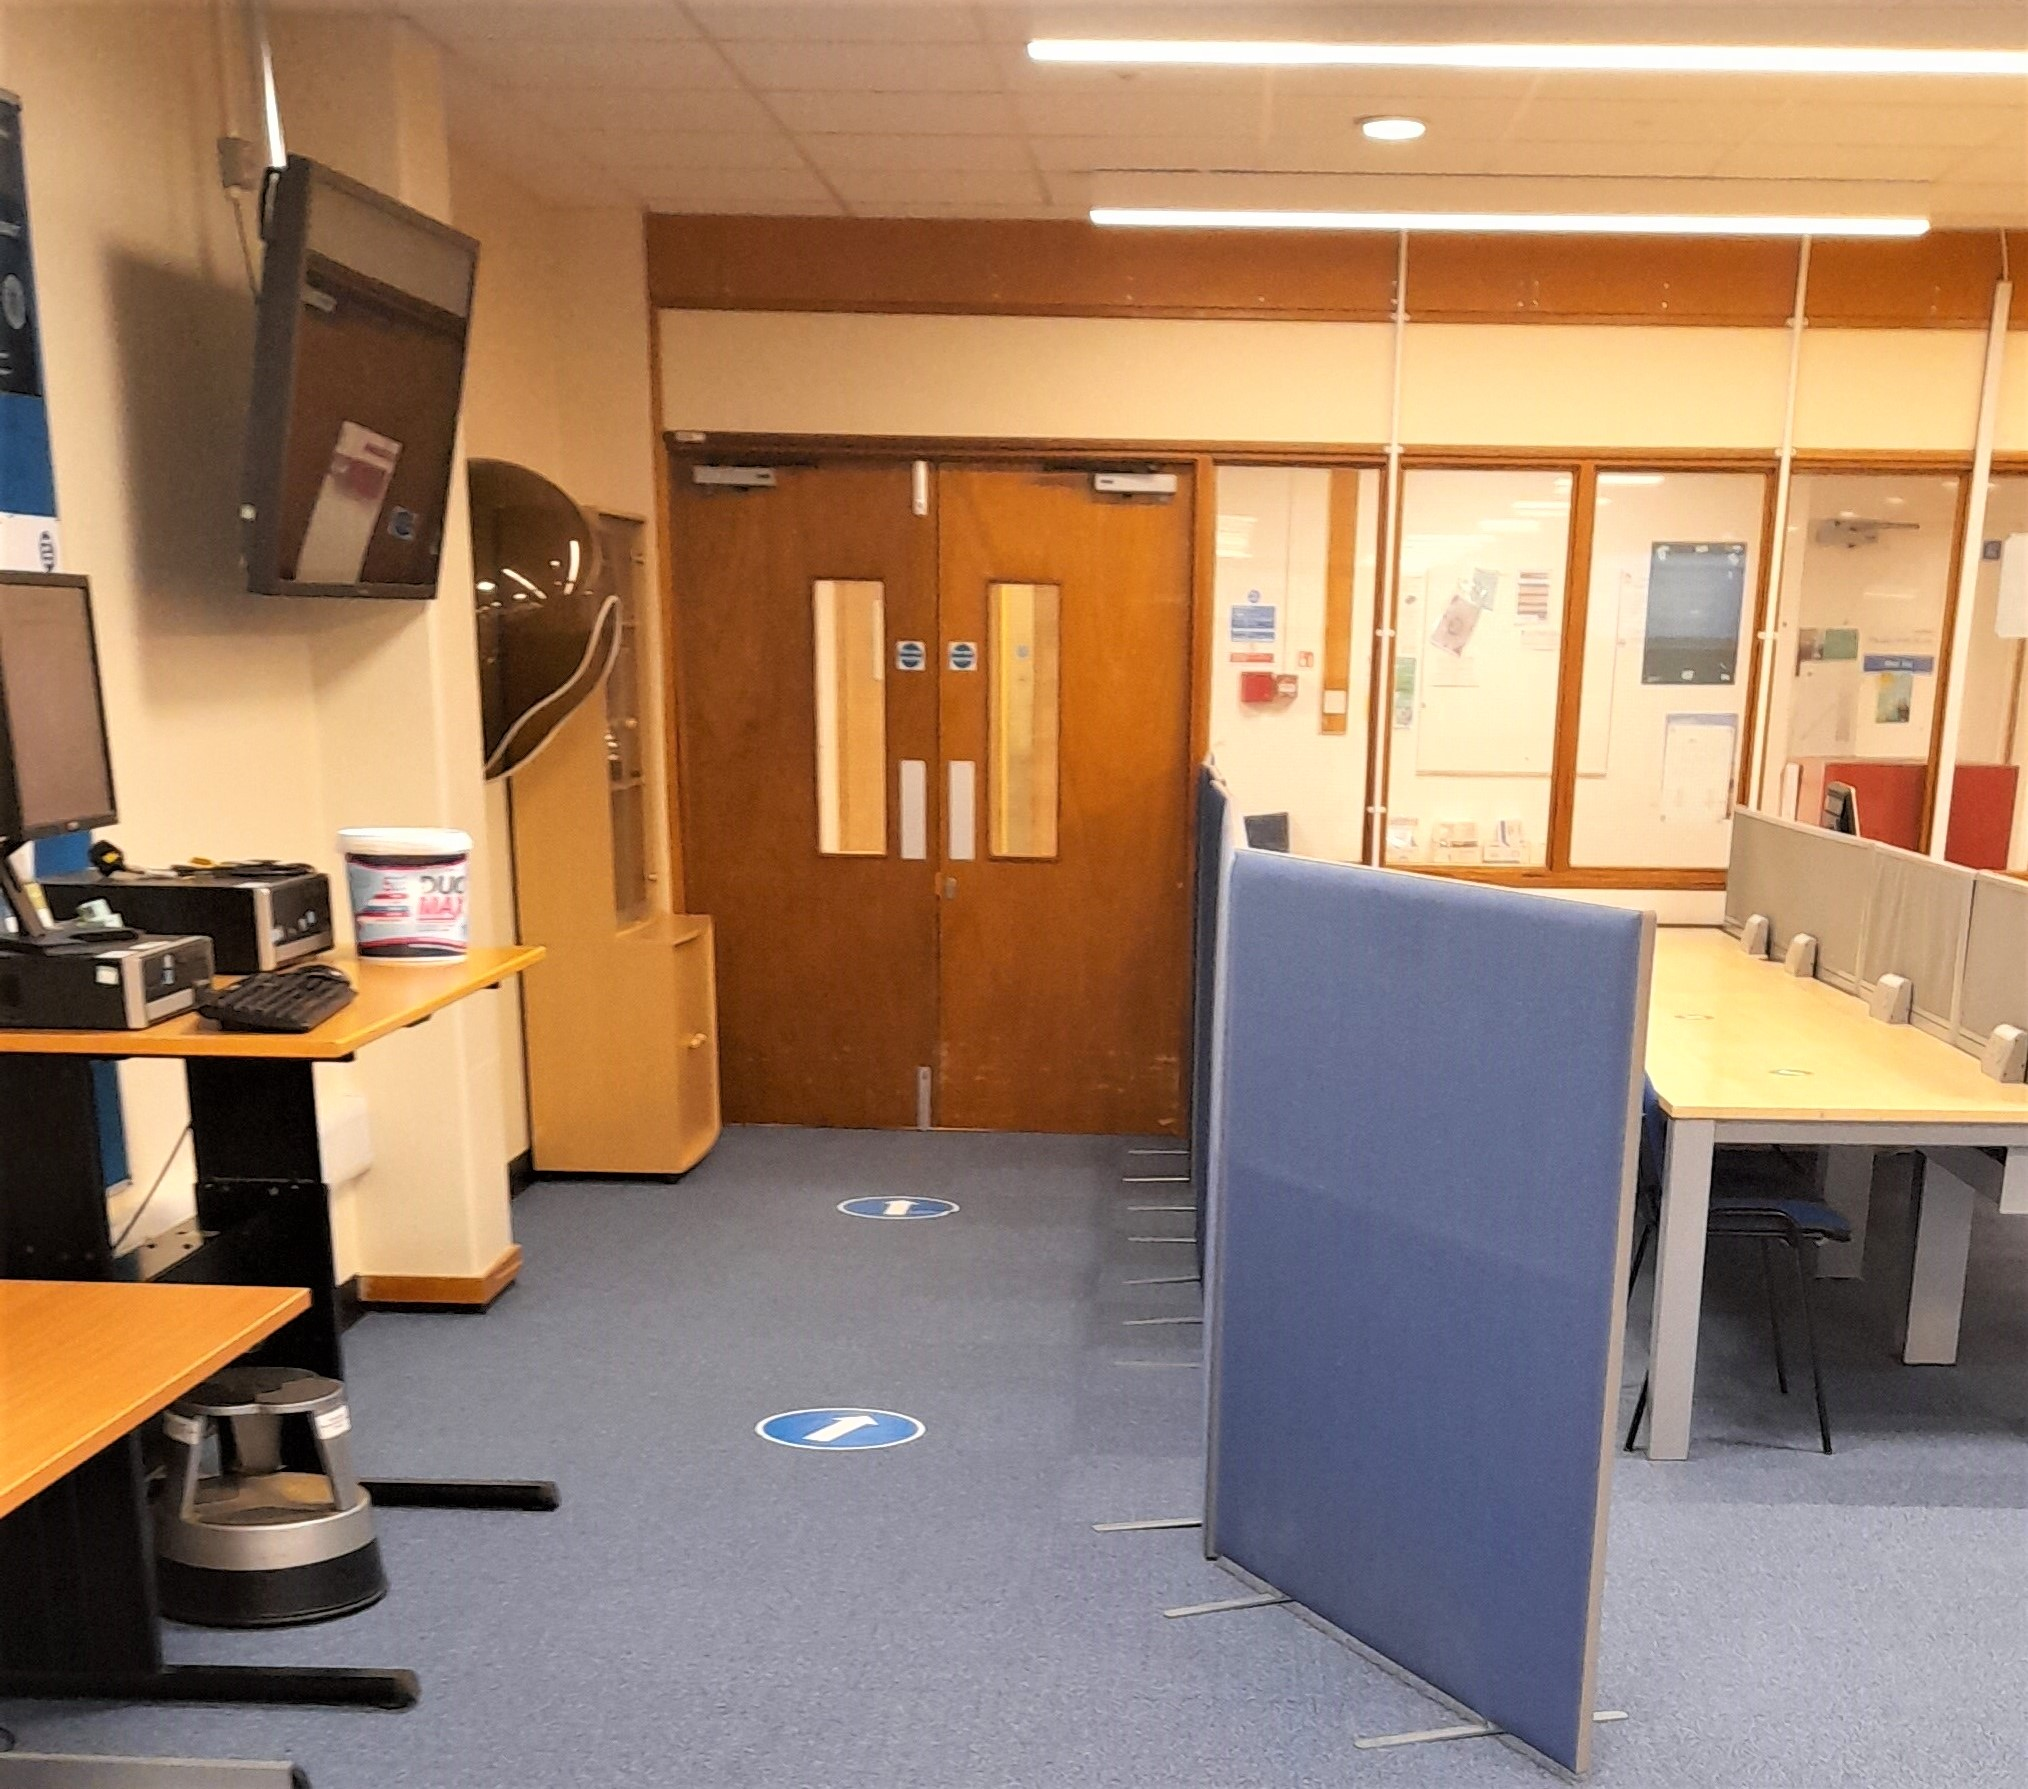 Public phone and exit of Health Services Library.